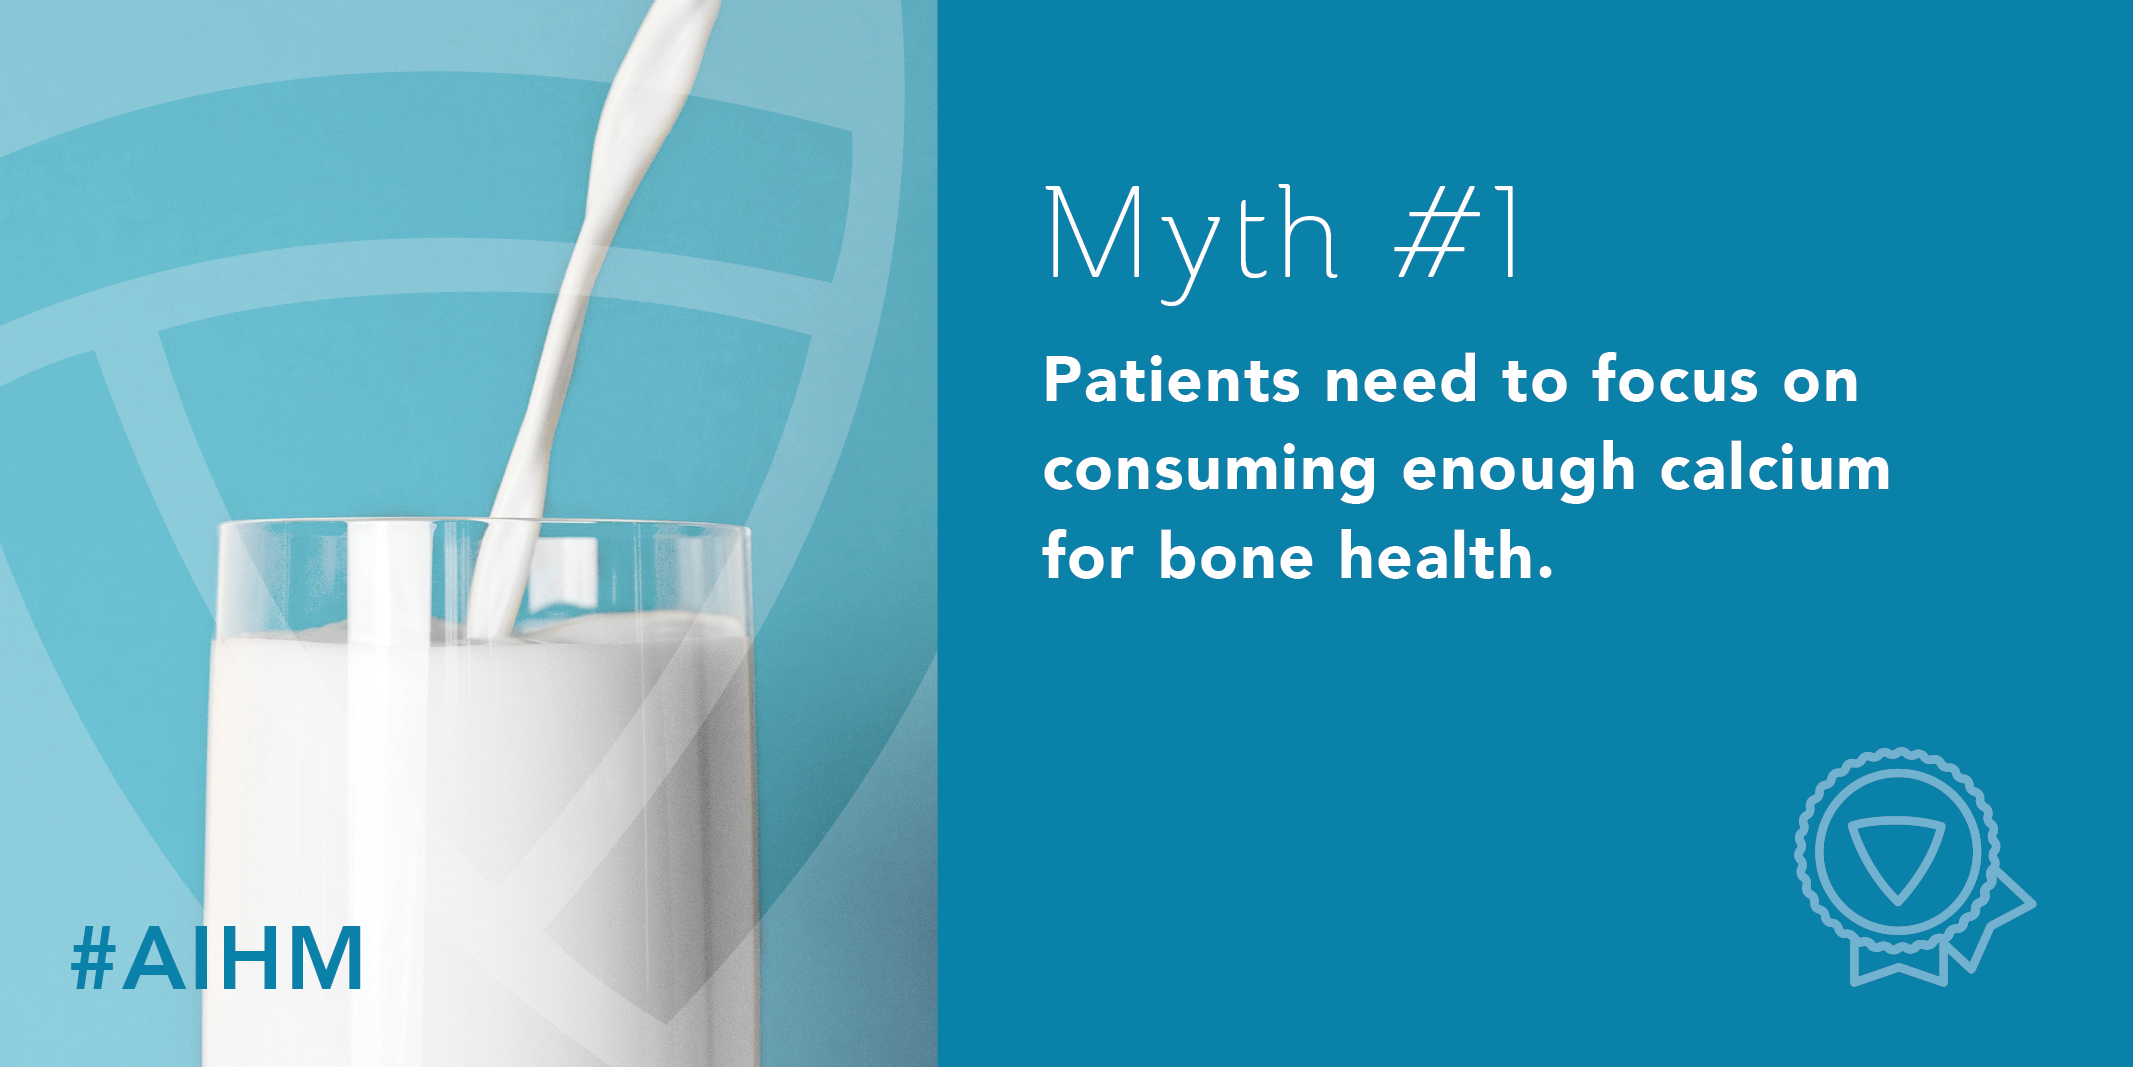 Myth #1: Patients need to focus on consuming enough calcium for bone health.